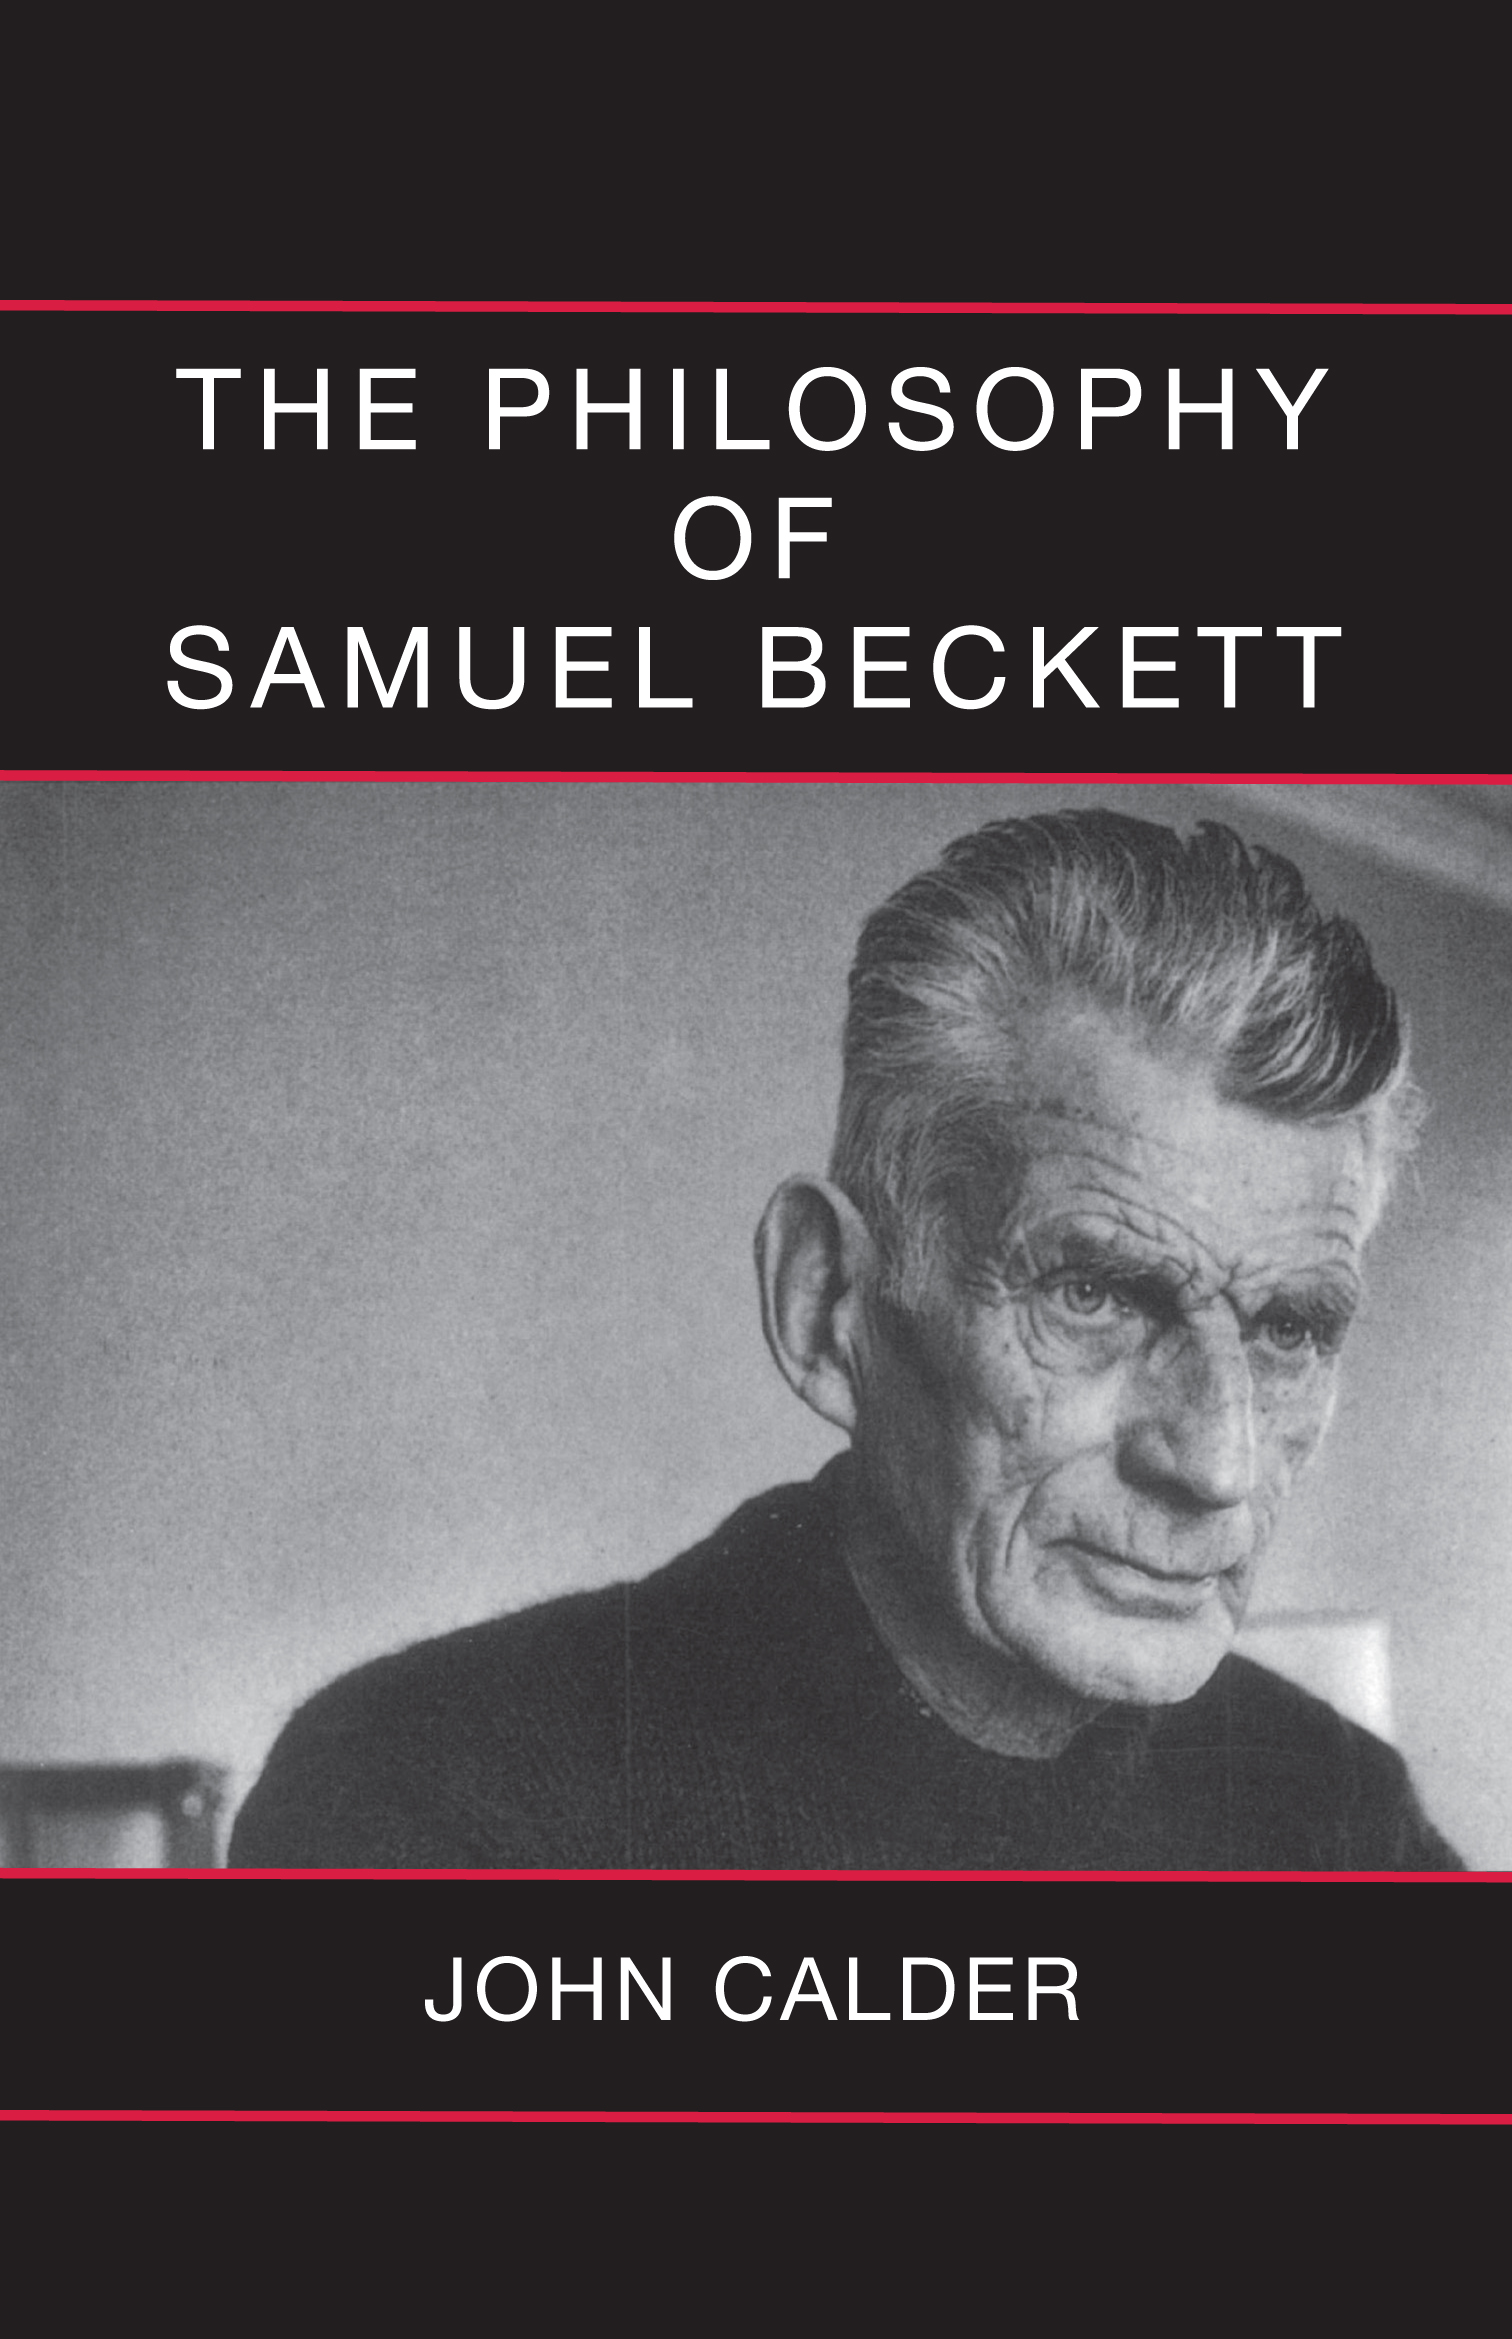 research papers on samuel beckett Samuel beckett: a collection of his papers at the harry ransom center open for research the life of samuel beckett new york:.